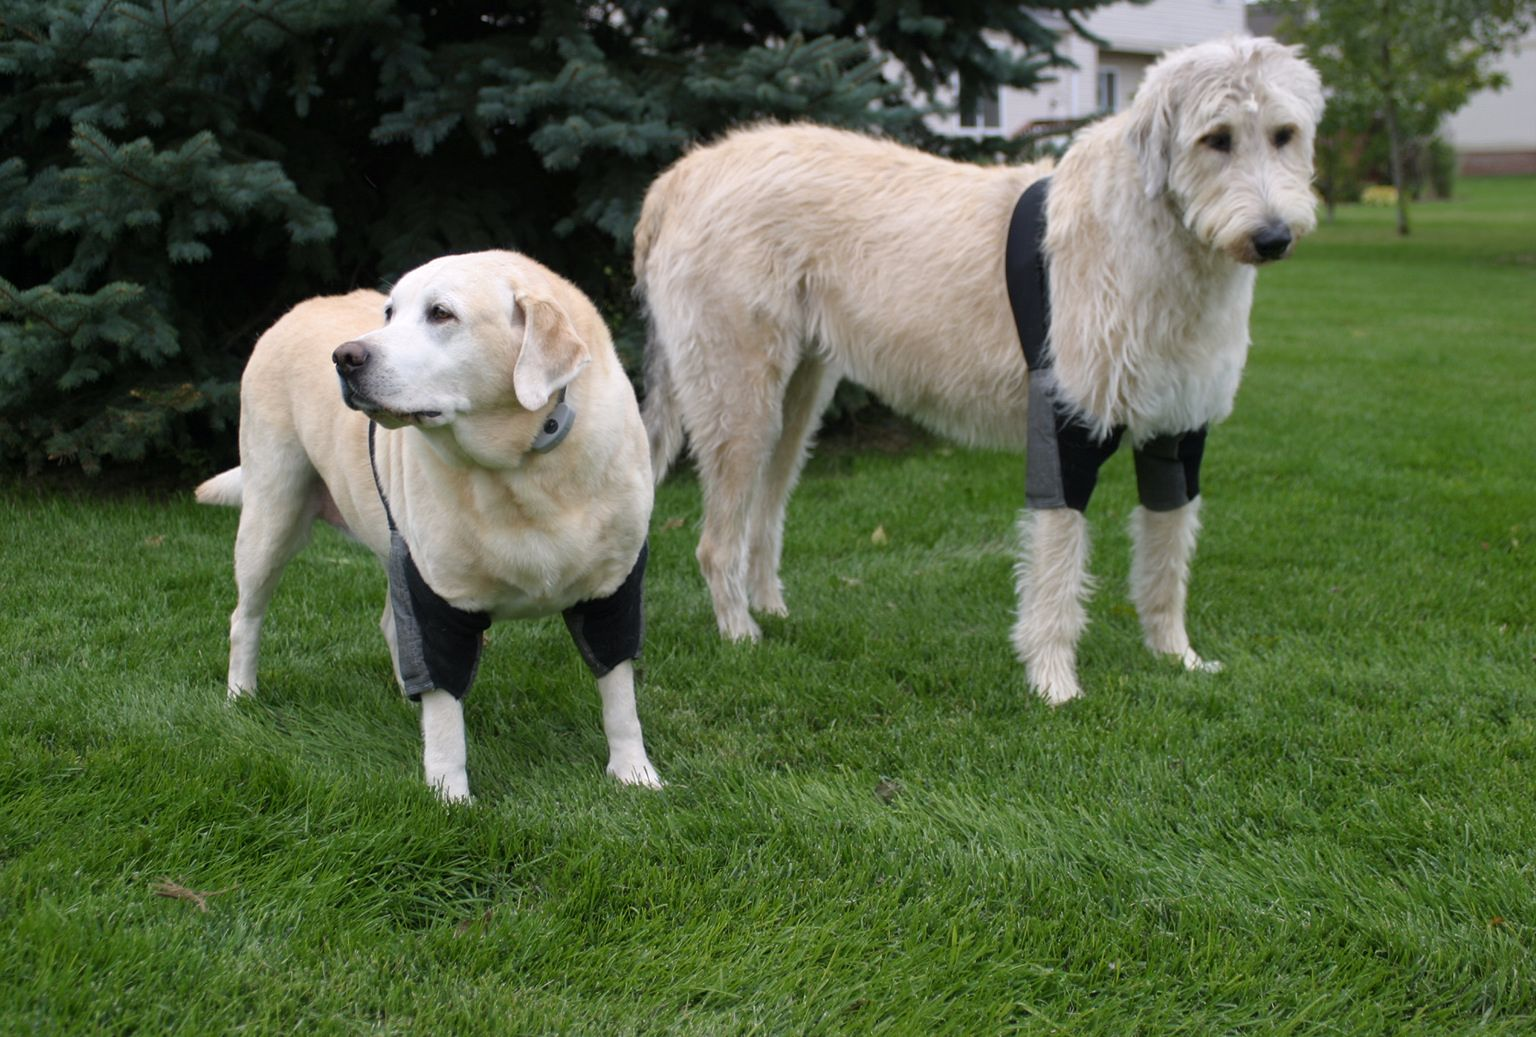 two dogs wearing the comfortable protective elbow sleeves